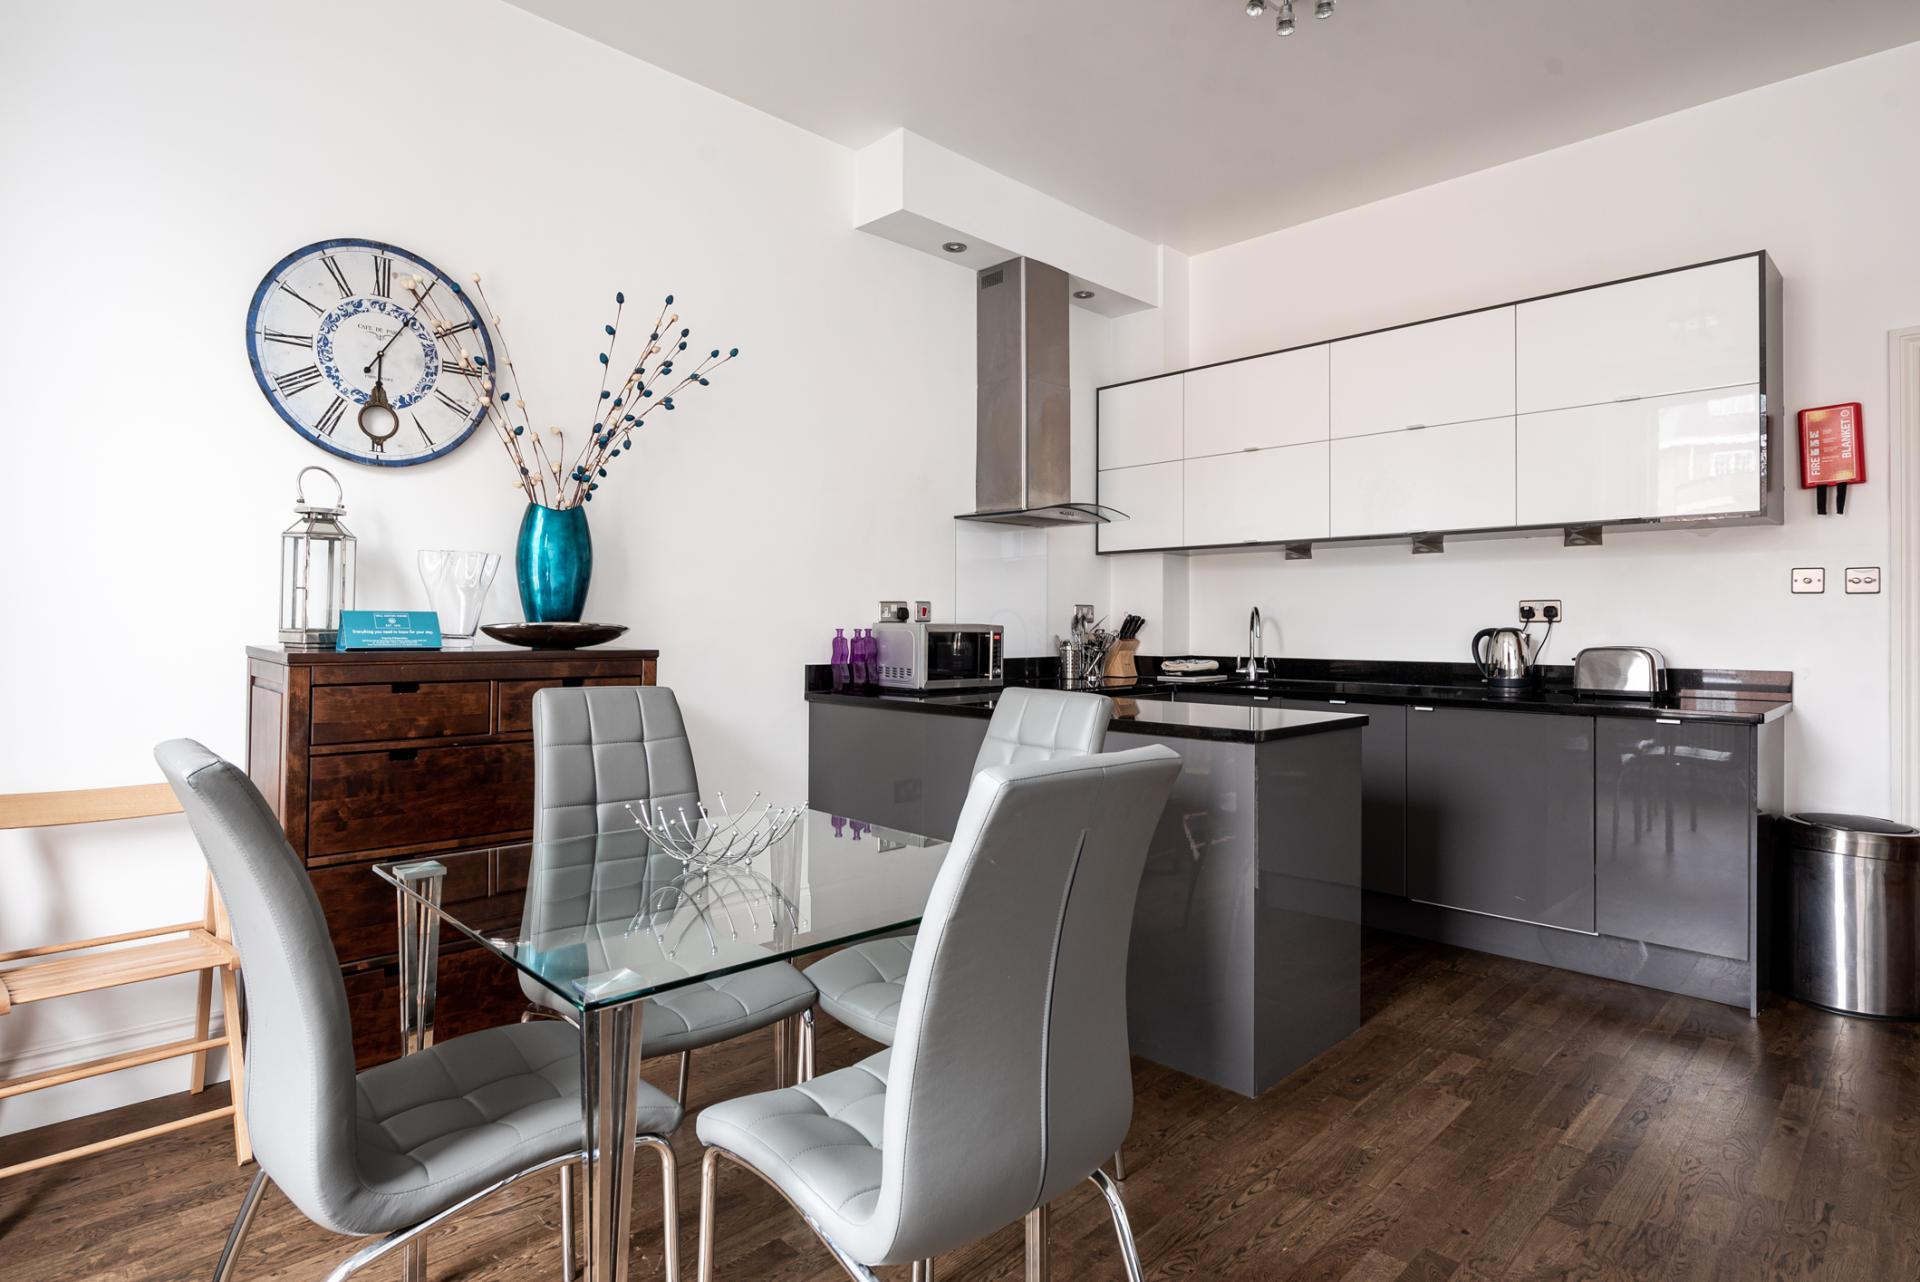 Dining table at Chelsea Green Apartments, Chelsea, London